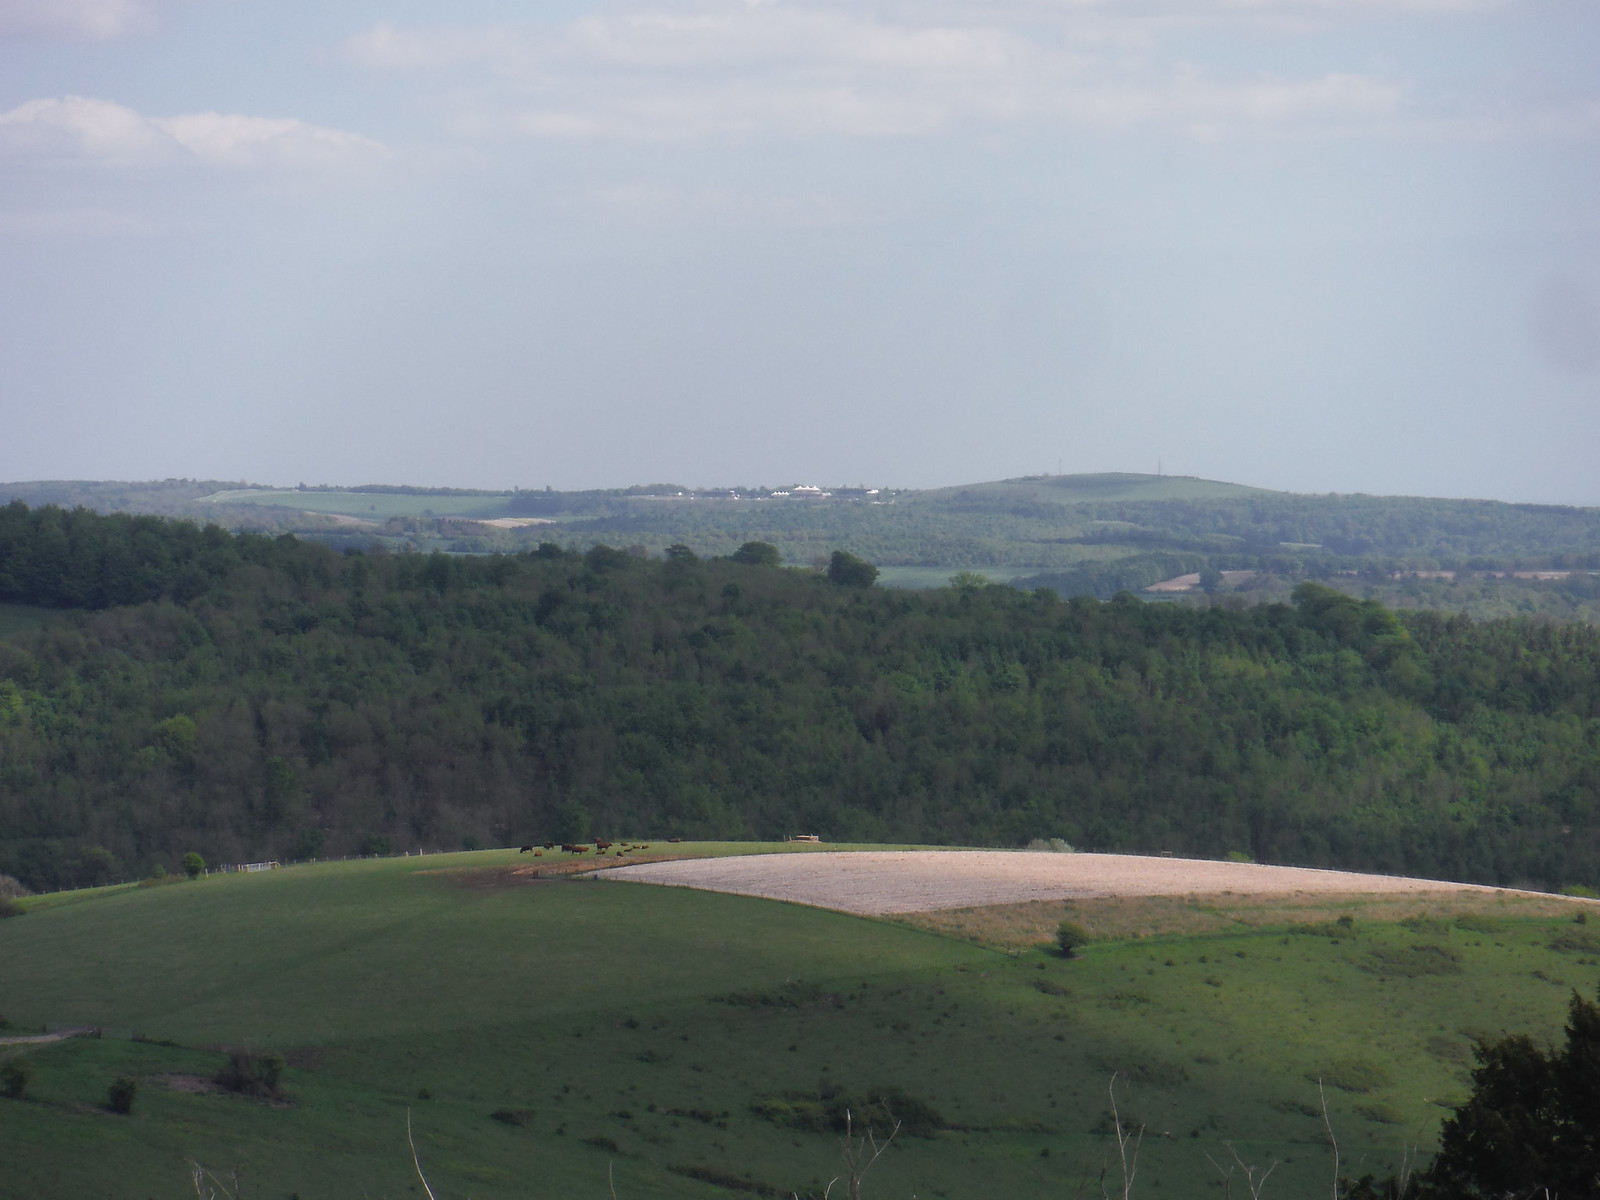 The Trundle (St. Roche's Hill) and Goodwood Race Course, from Pen Hill SWC Walk Rowlands Castle Circular - Extension